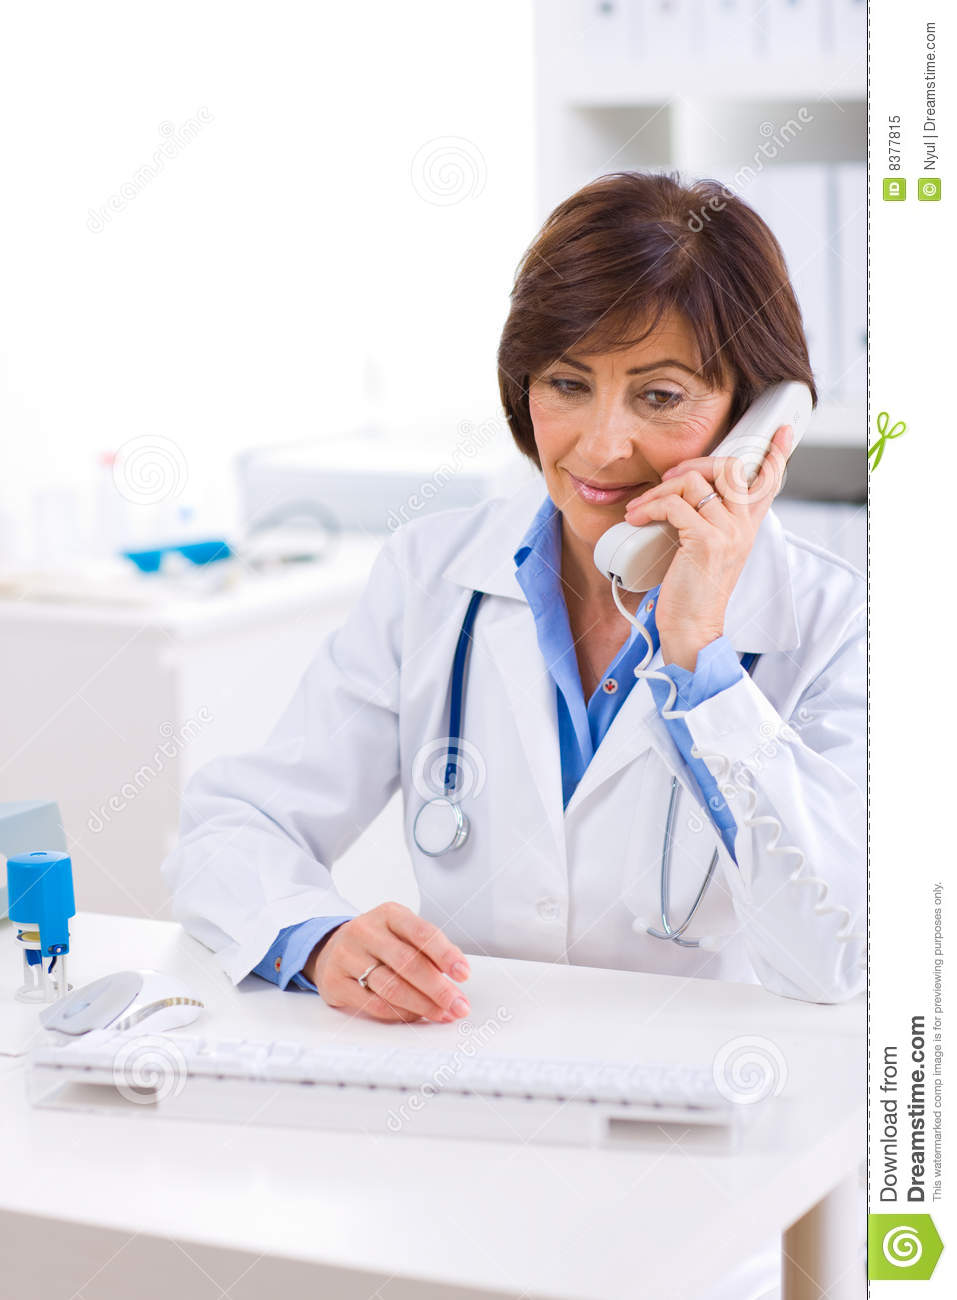 Doctor Calling On Phone Royalty Free Stock Photo - Image: 8377815